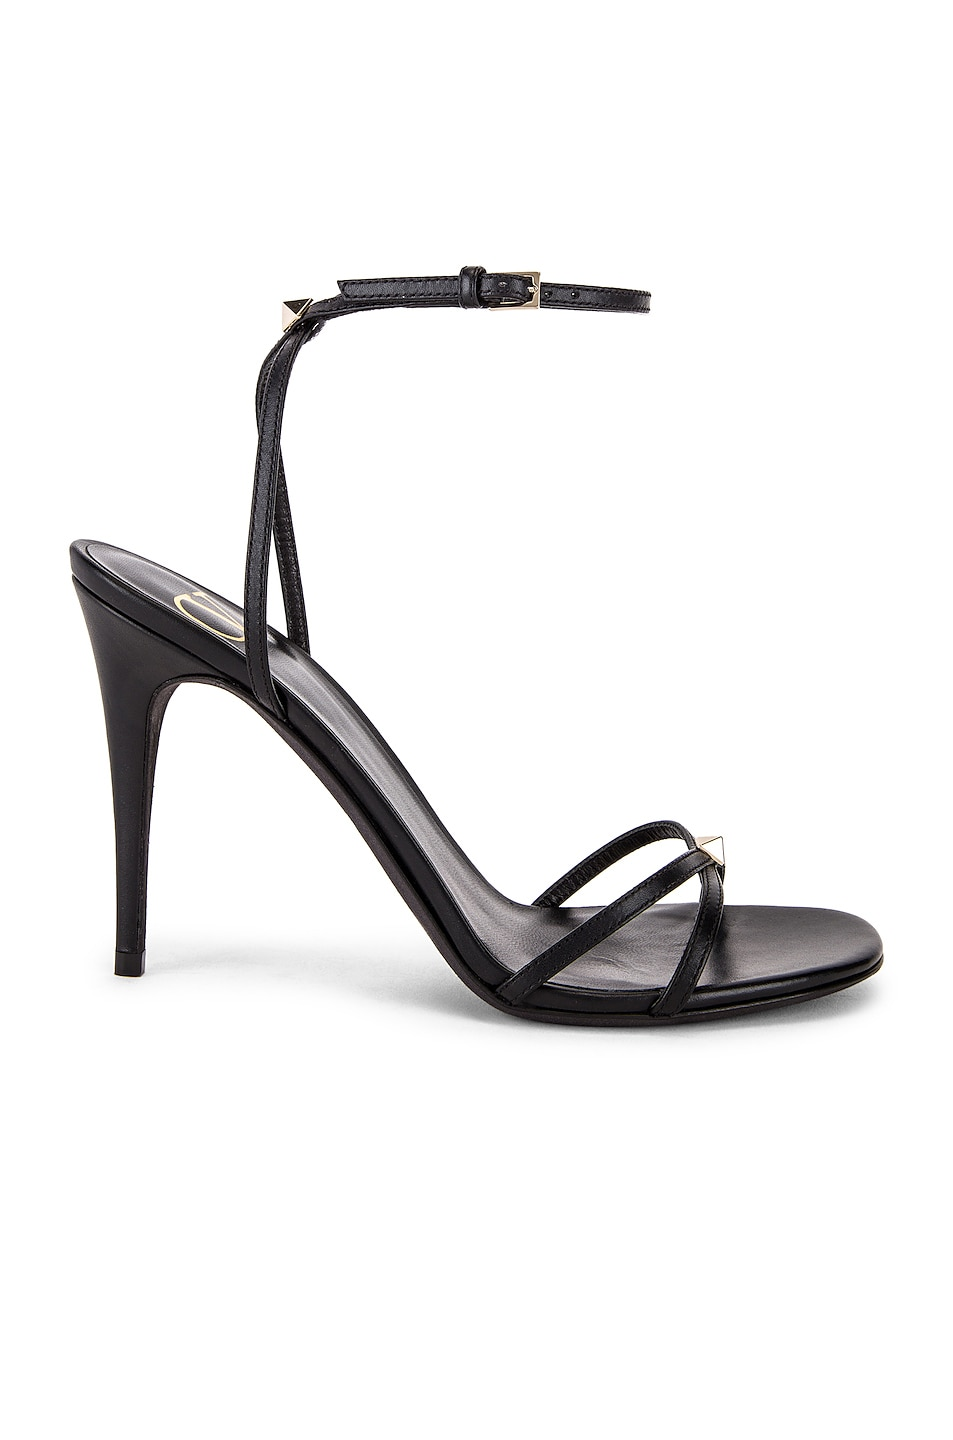 Image 1 of Valentino Garavani Strappy Heel in Nero